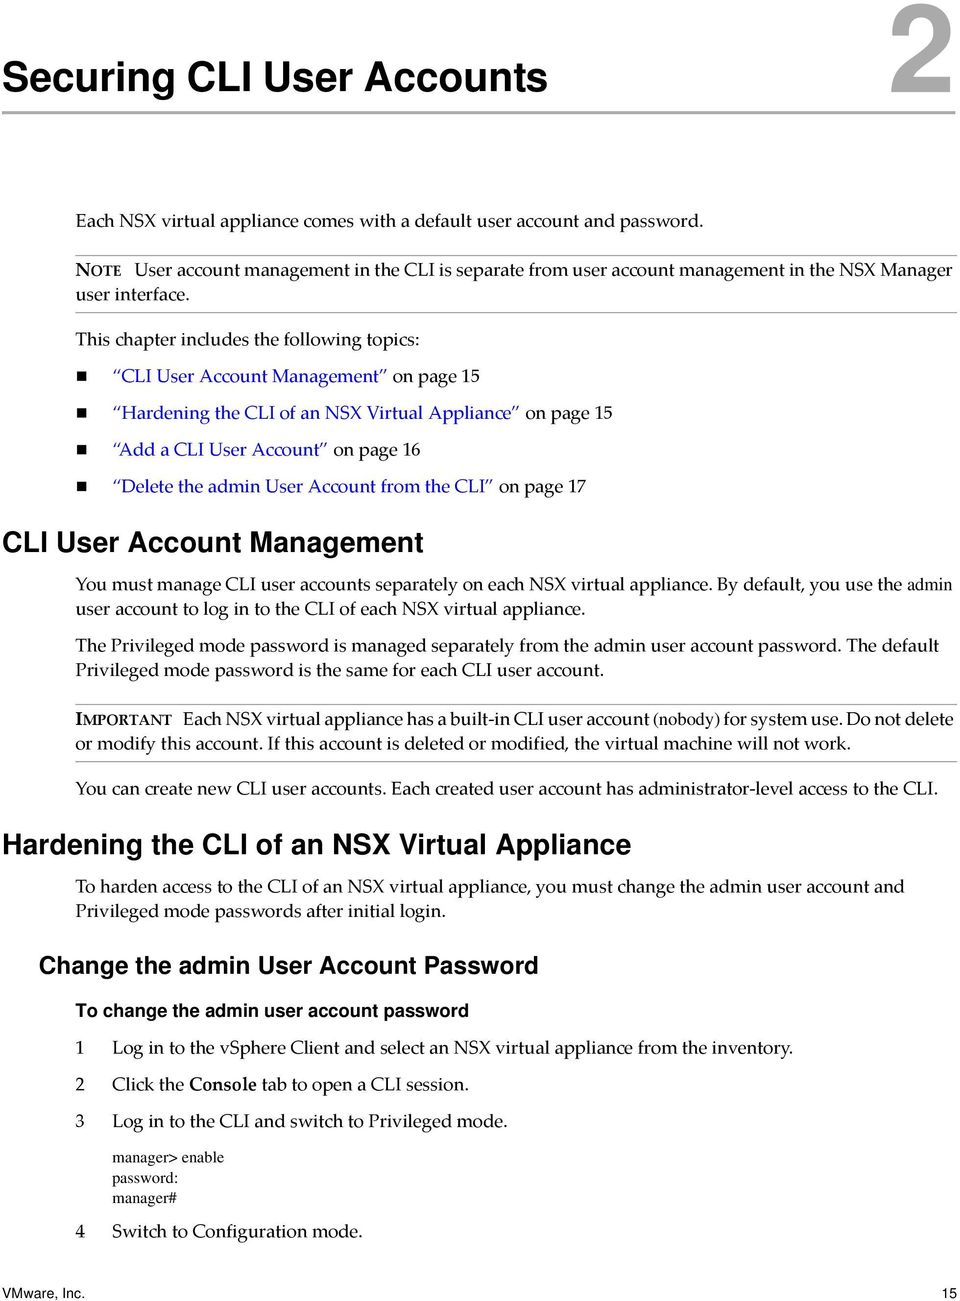 This chapter includes the following topics: CLI User Account Management on page 15 Hardening the CLI of an NSX Virtual Appliance on page 15 Add a CLI User Account on page 16 Delete the admin User